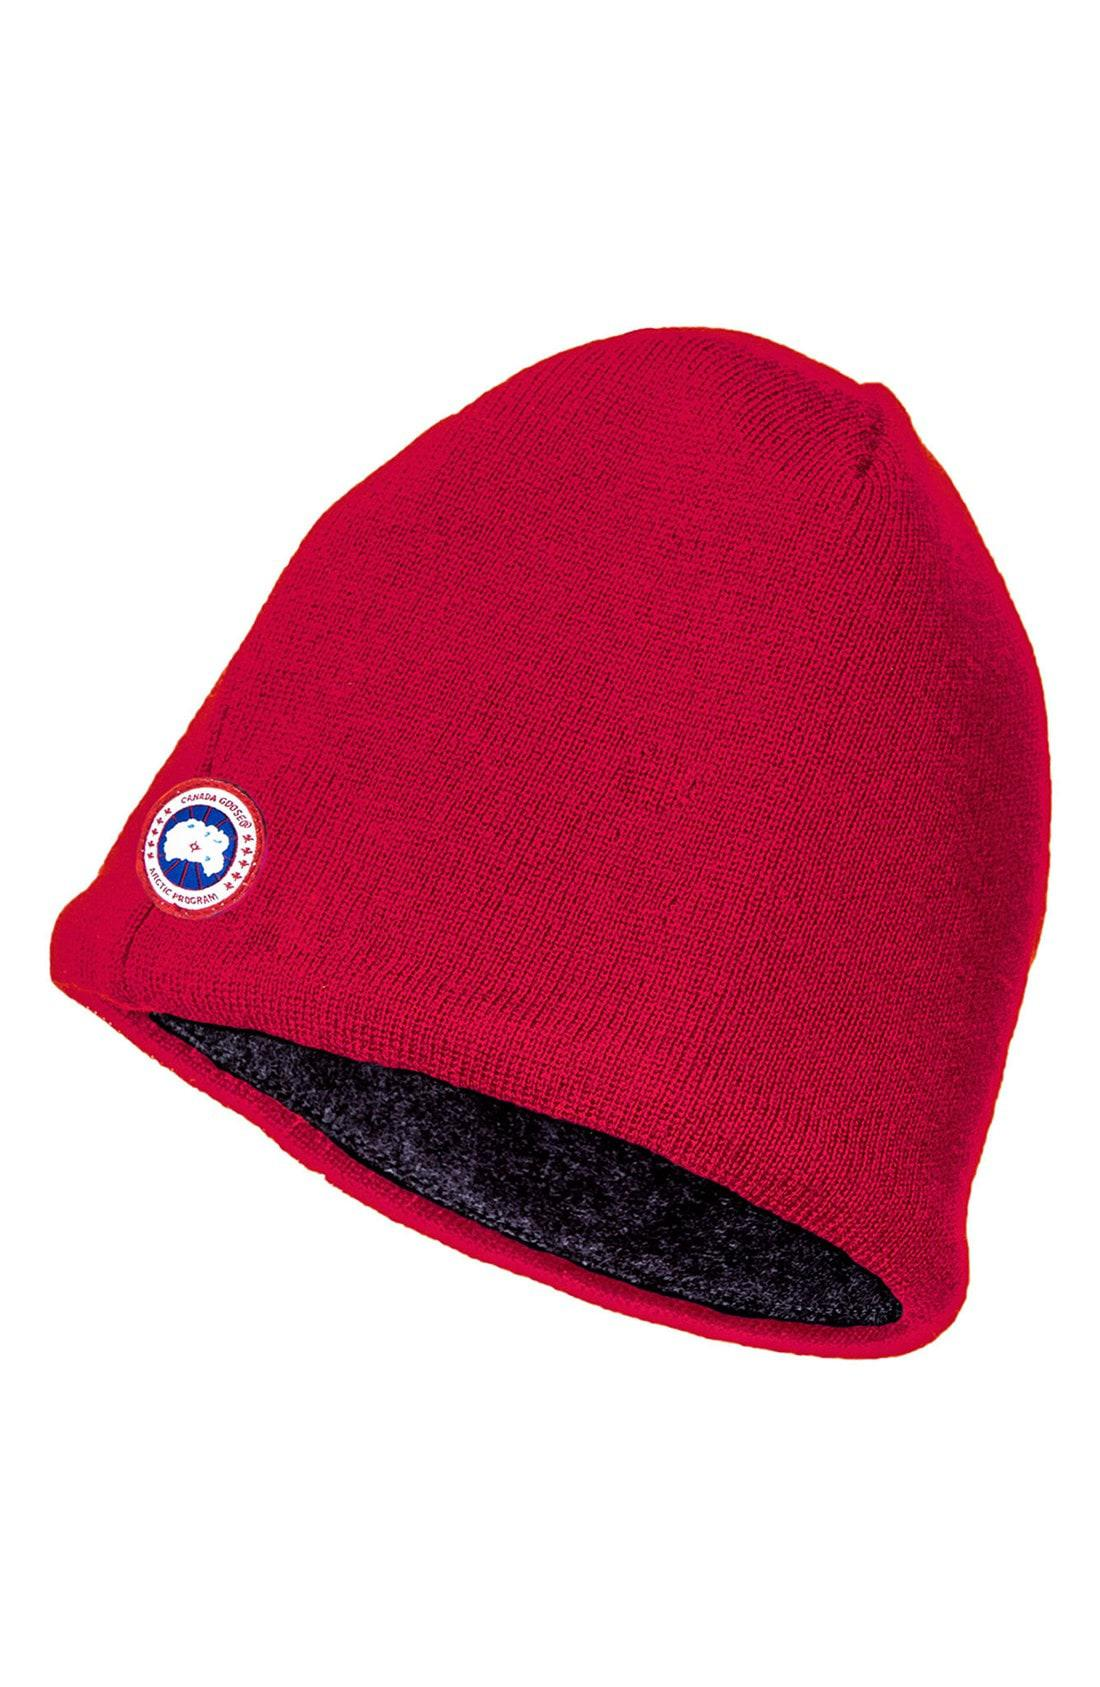 a5c4125c5 Lyst - Canada Goose Merino Wool Beanie in Red for Men